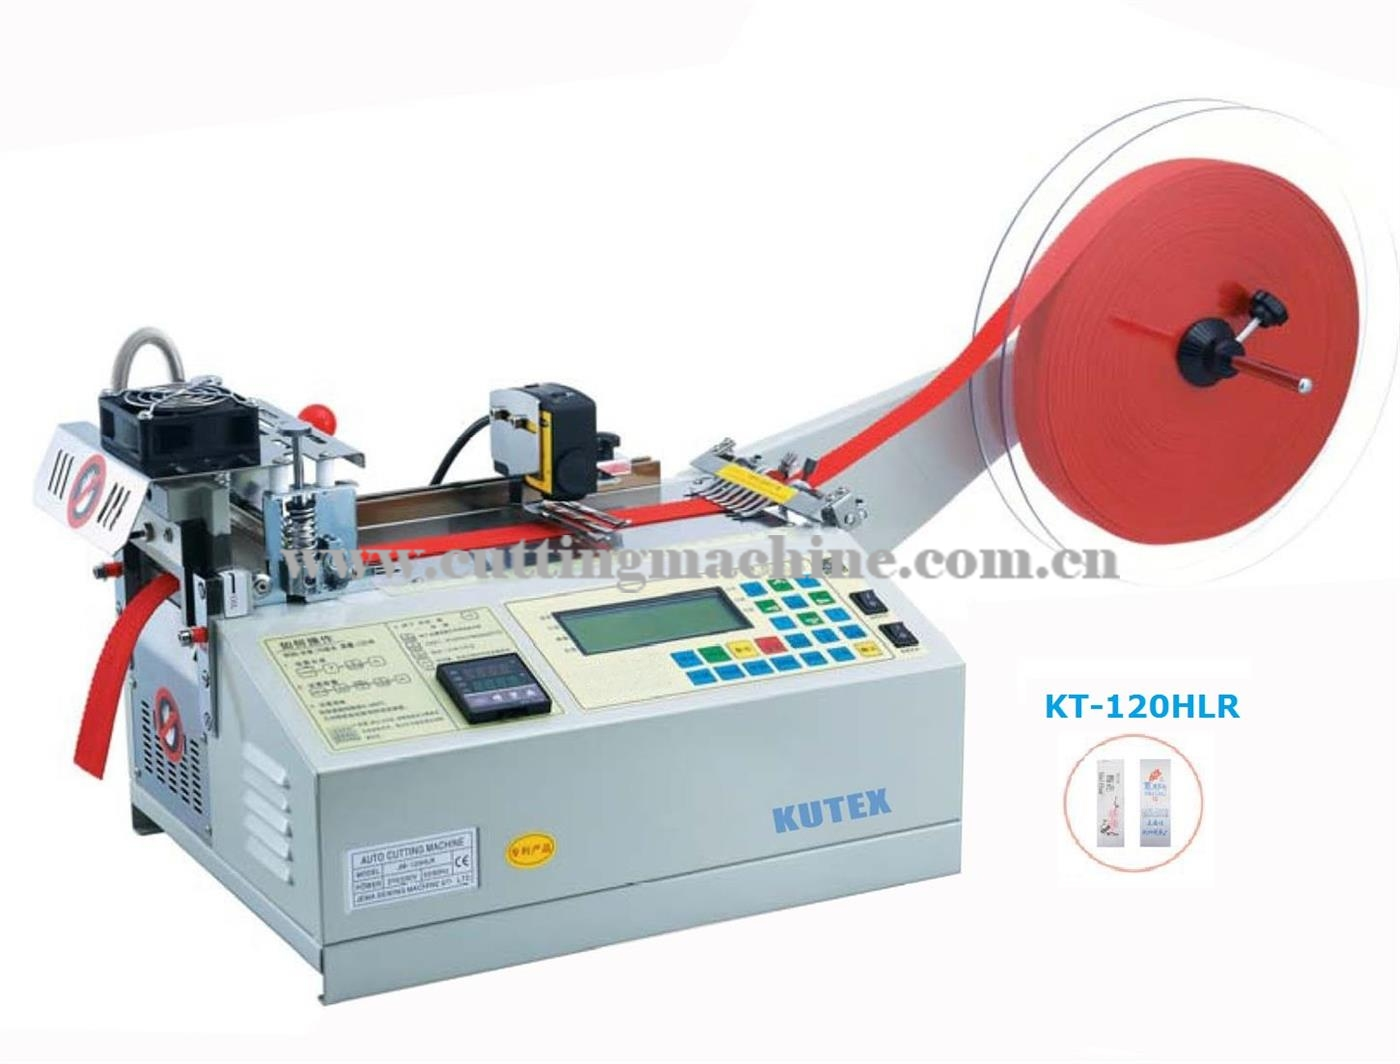 Automatic Label Cutting Machine (Hot and Cold Knife)